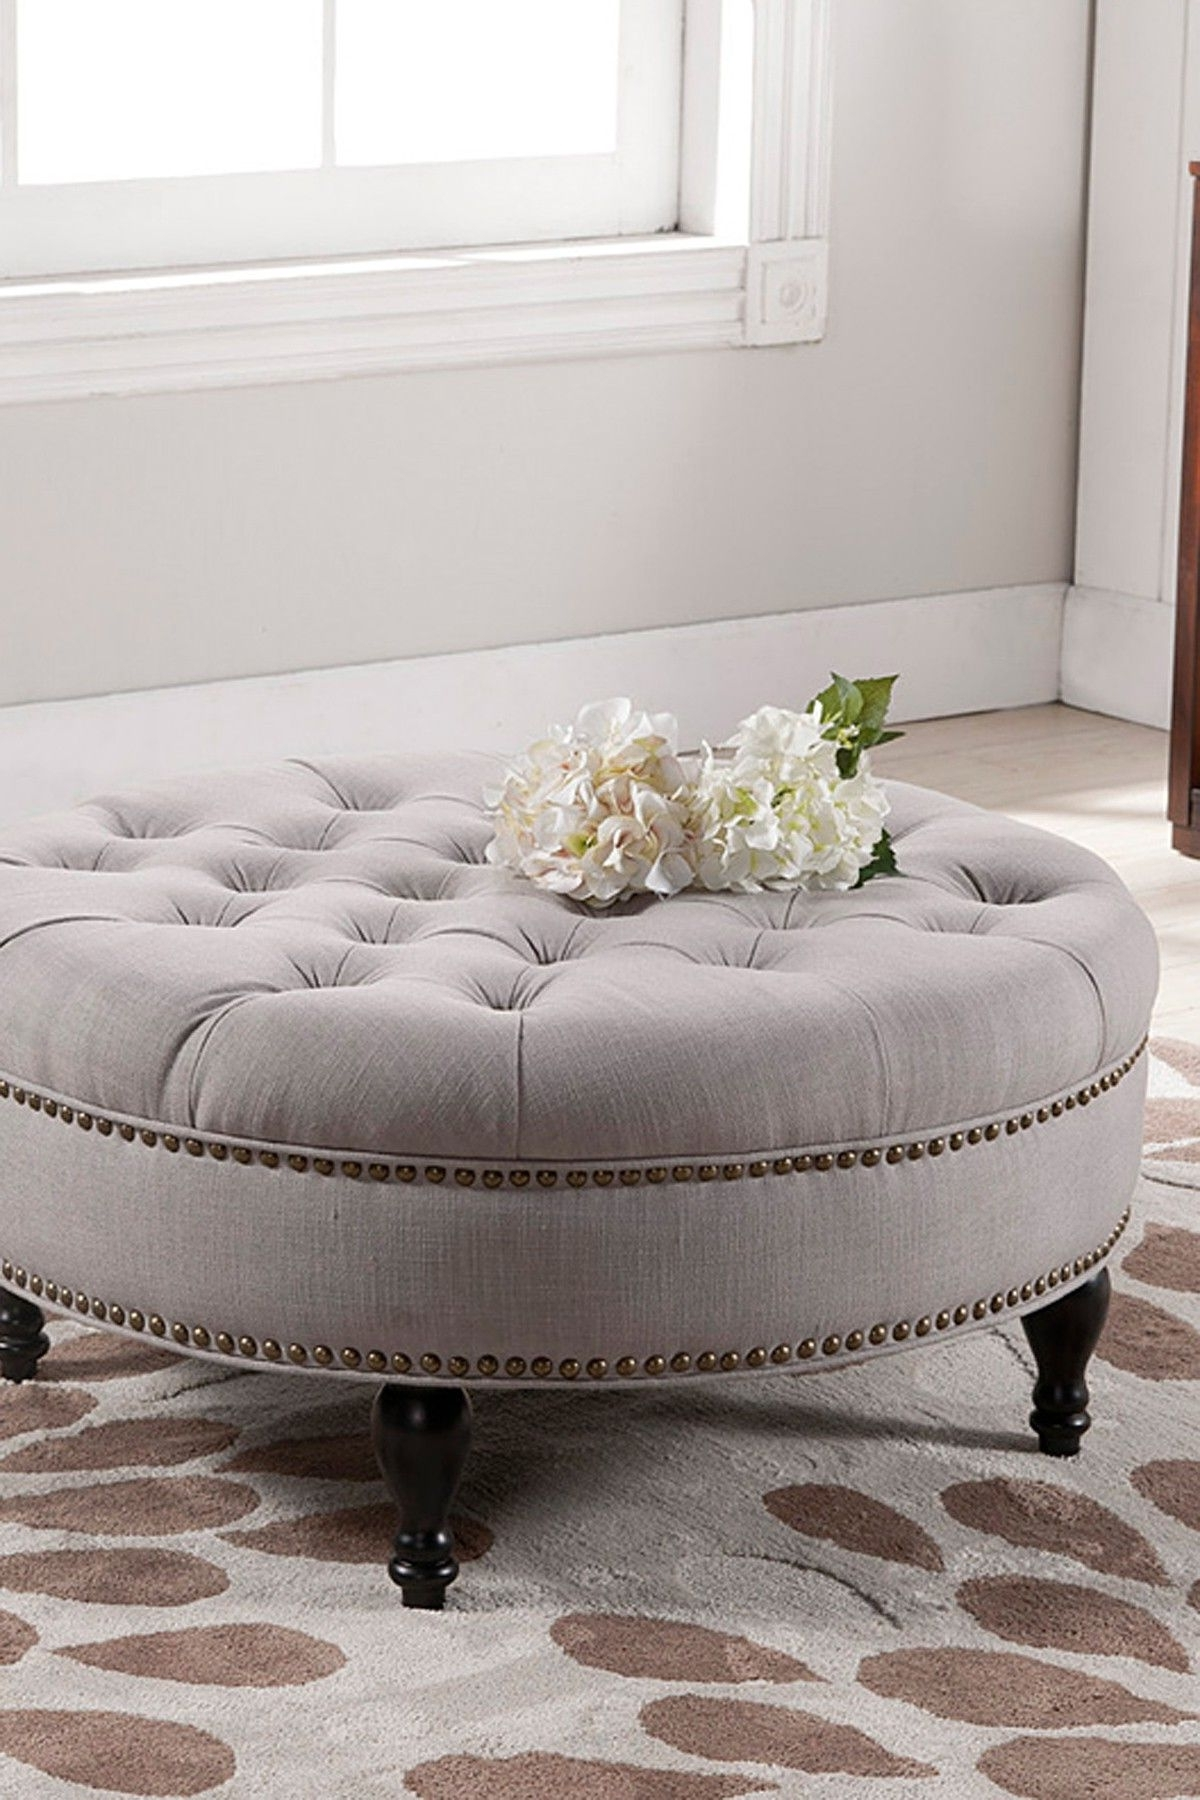 Tufted Ottoman (View 17 of 20)